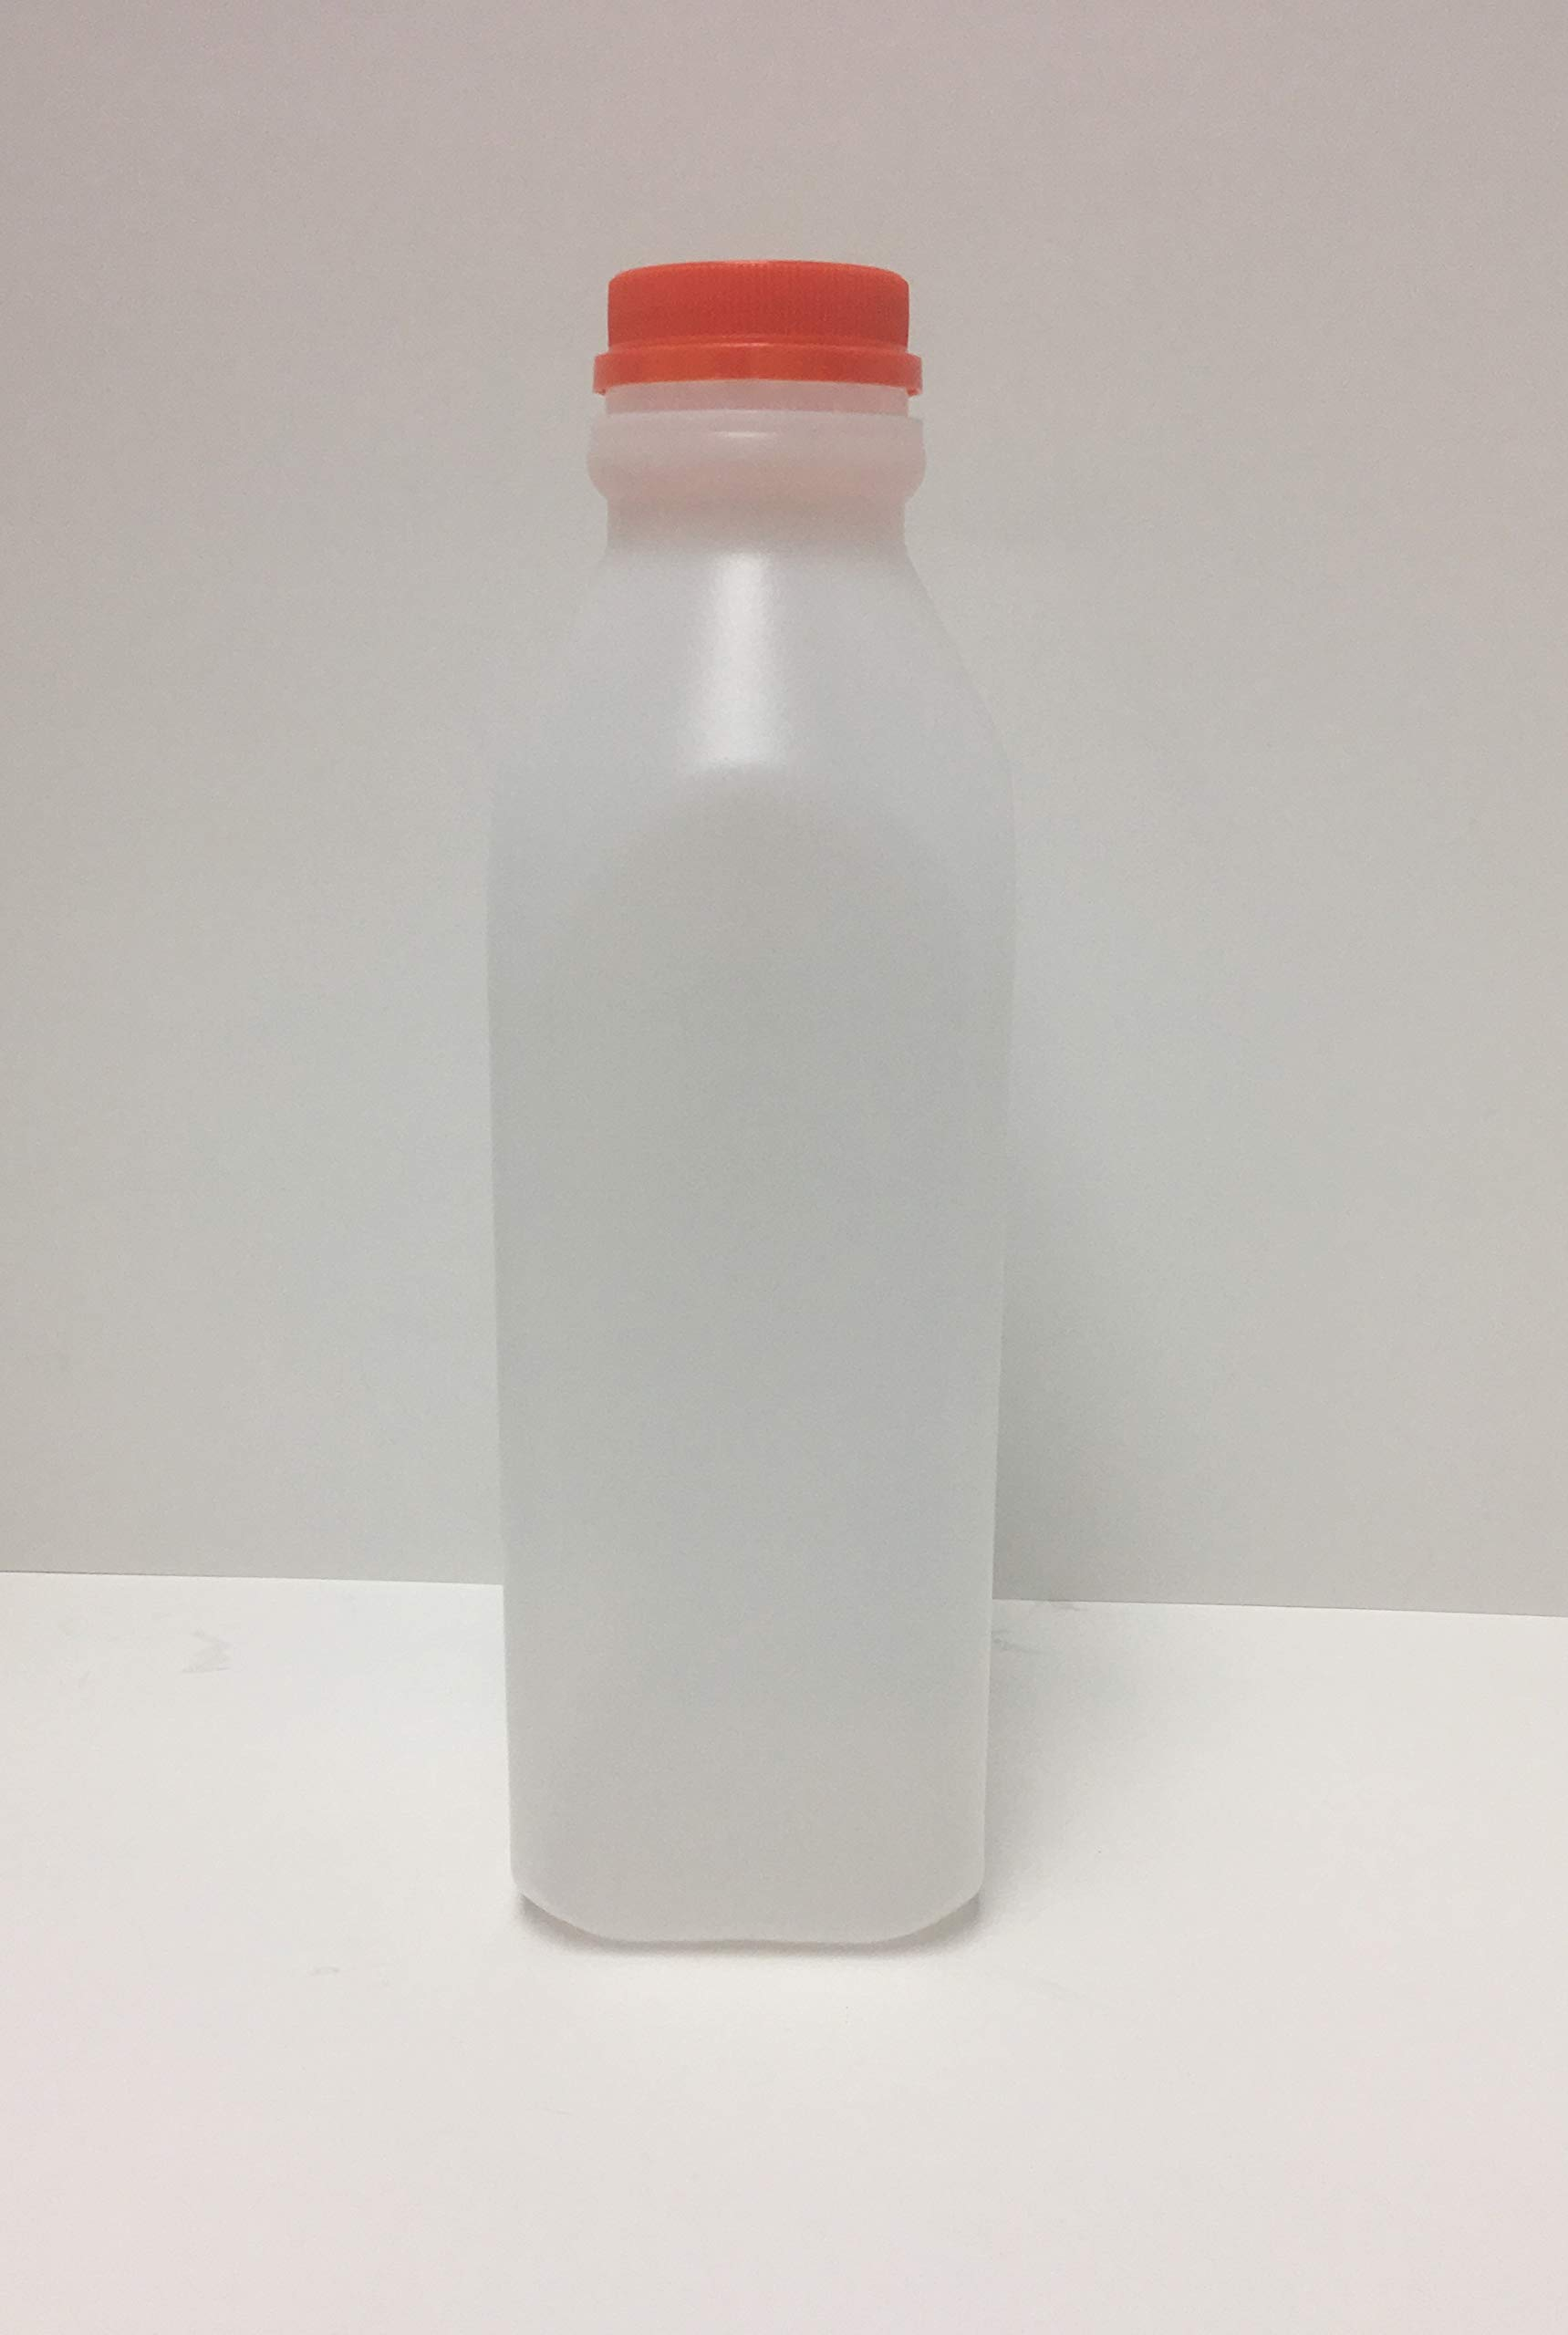 32oz Natural HDPE Plastic Beverage Juice/Dairy Containers with Tamper Evident Caps - Pack of 6 (6 Pack, Orange Caps)